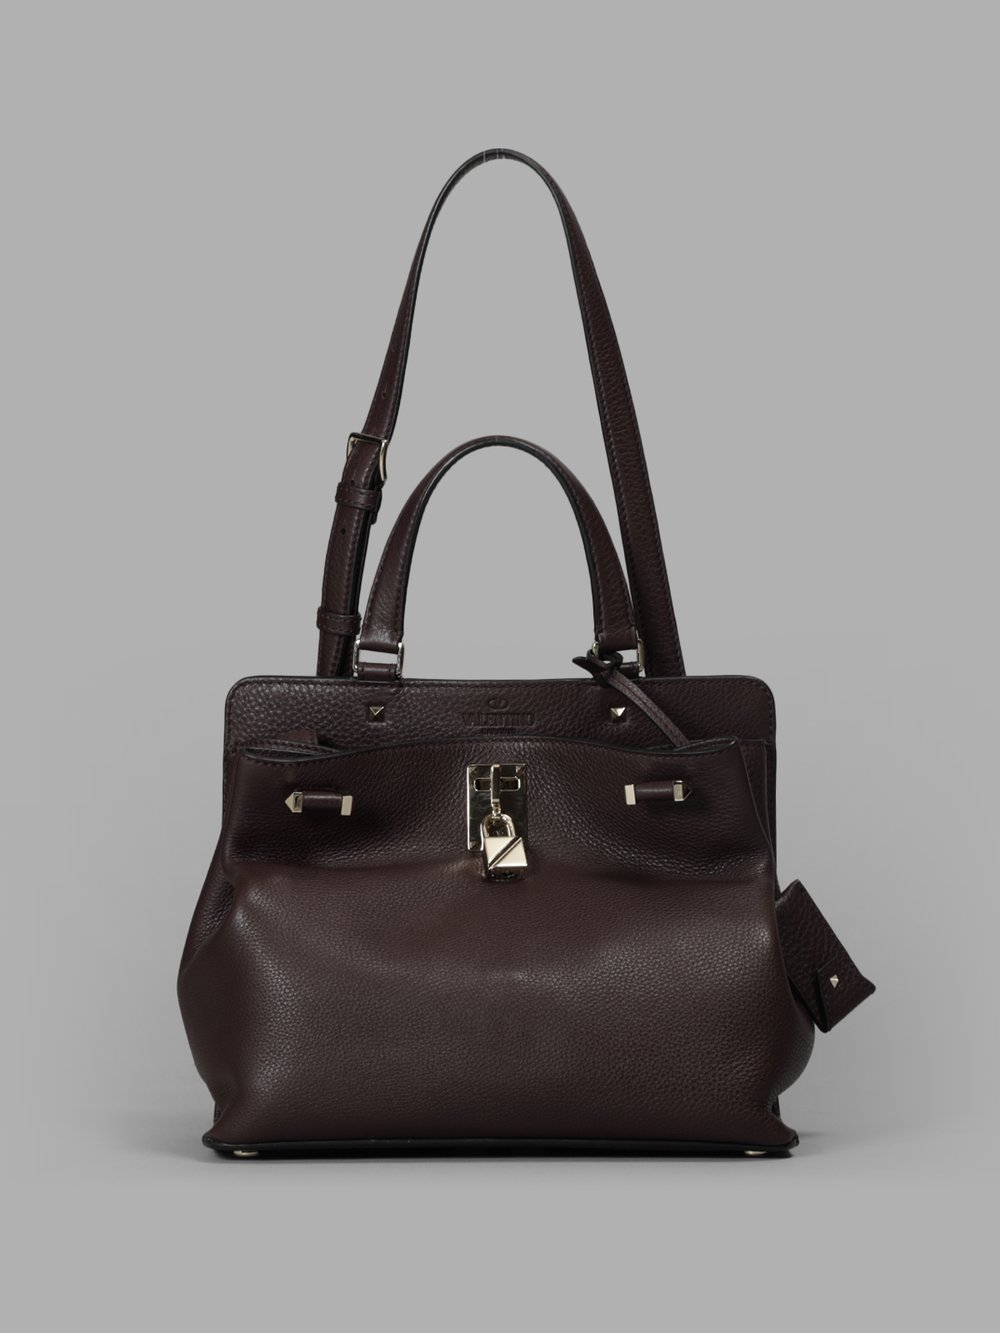 Valentino Woman'S Brown Medium Joylock Bag